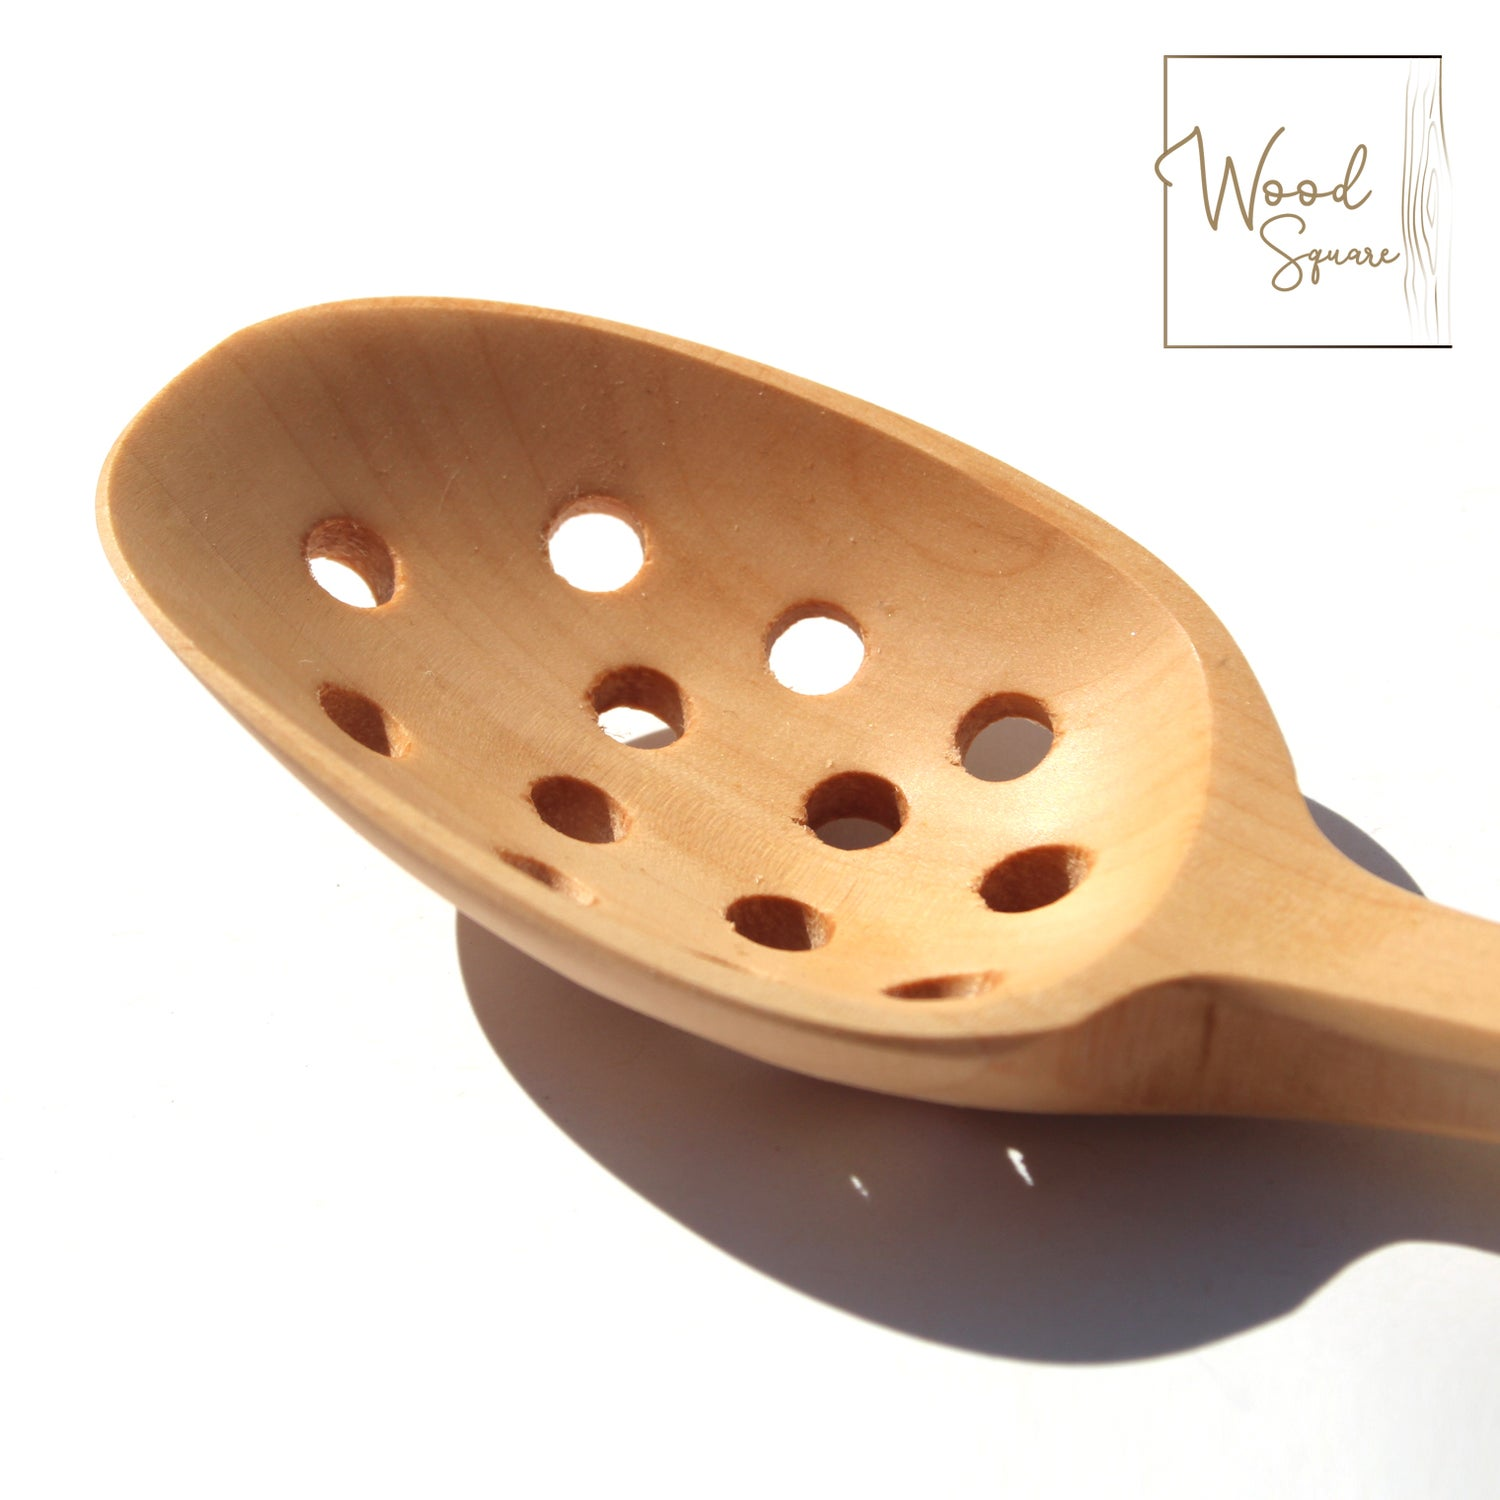 Image of Egg Spoon